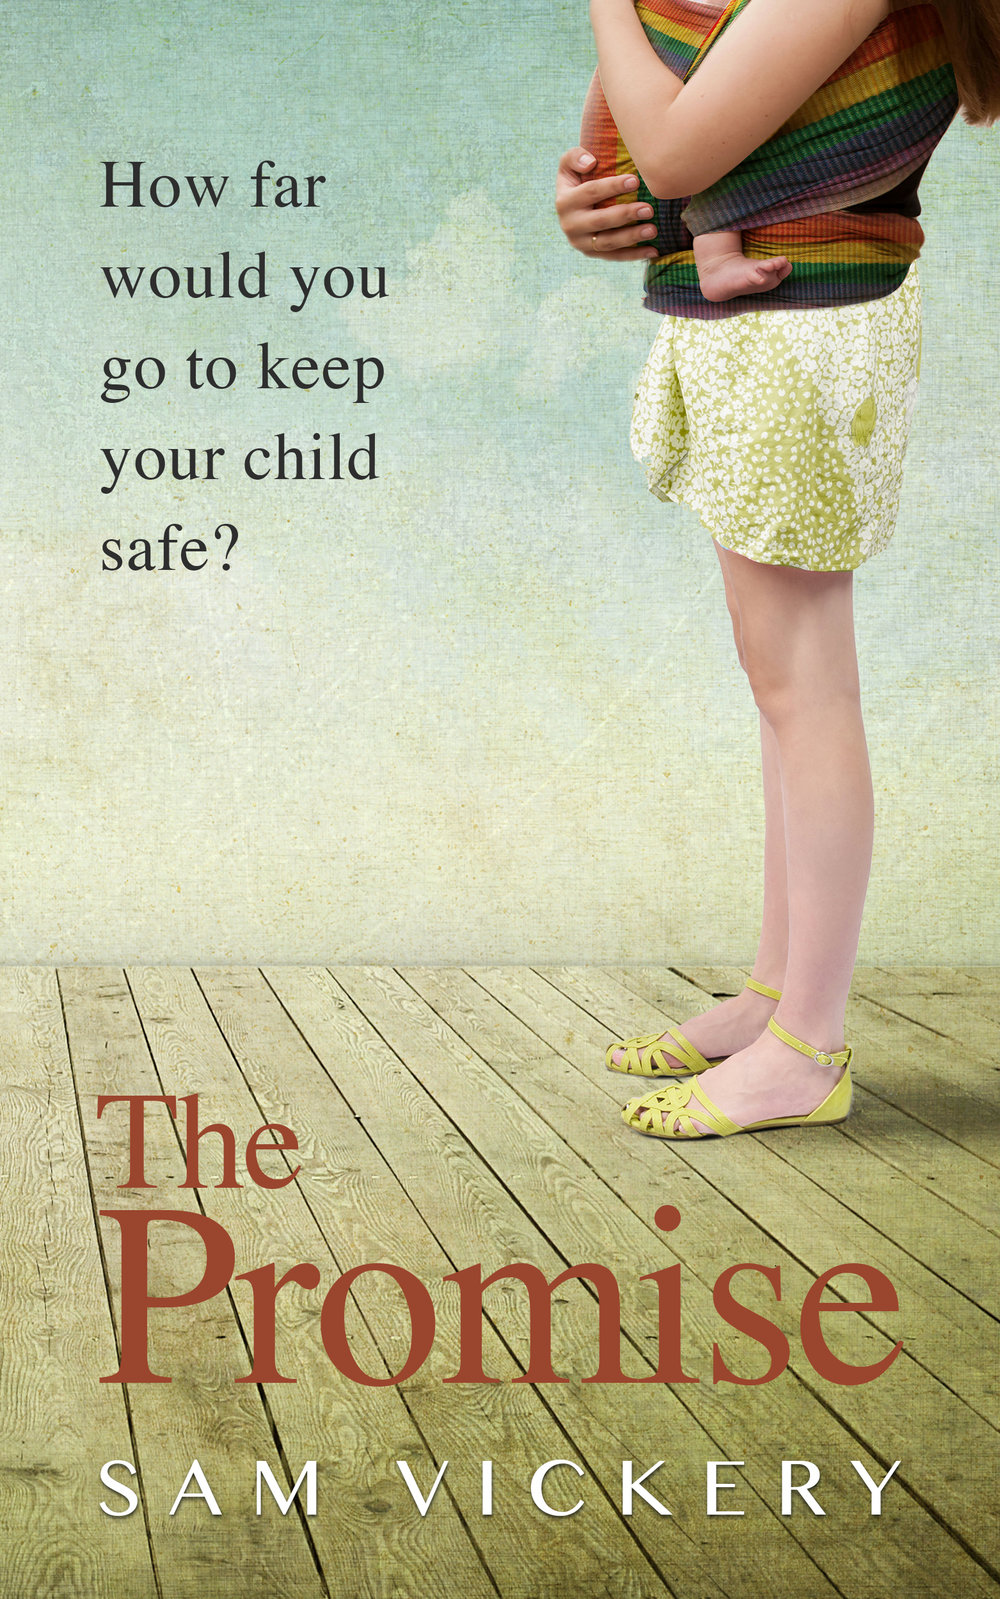 The Promise - Sam Vickery    What would you do if you found a baby alone on the streets? What if you knew you were his only hope? Just how far would you go to keep him safe?.